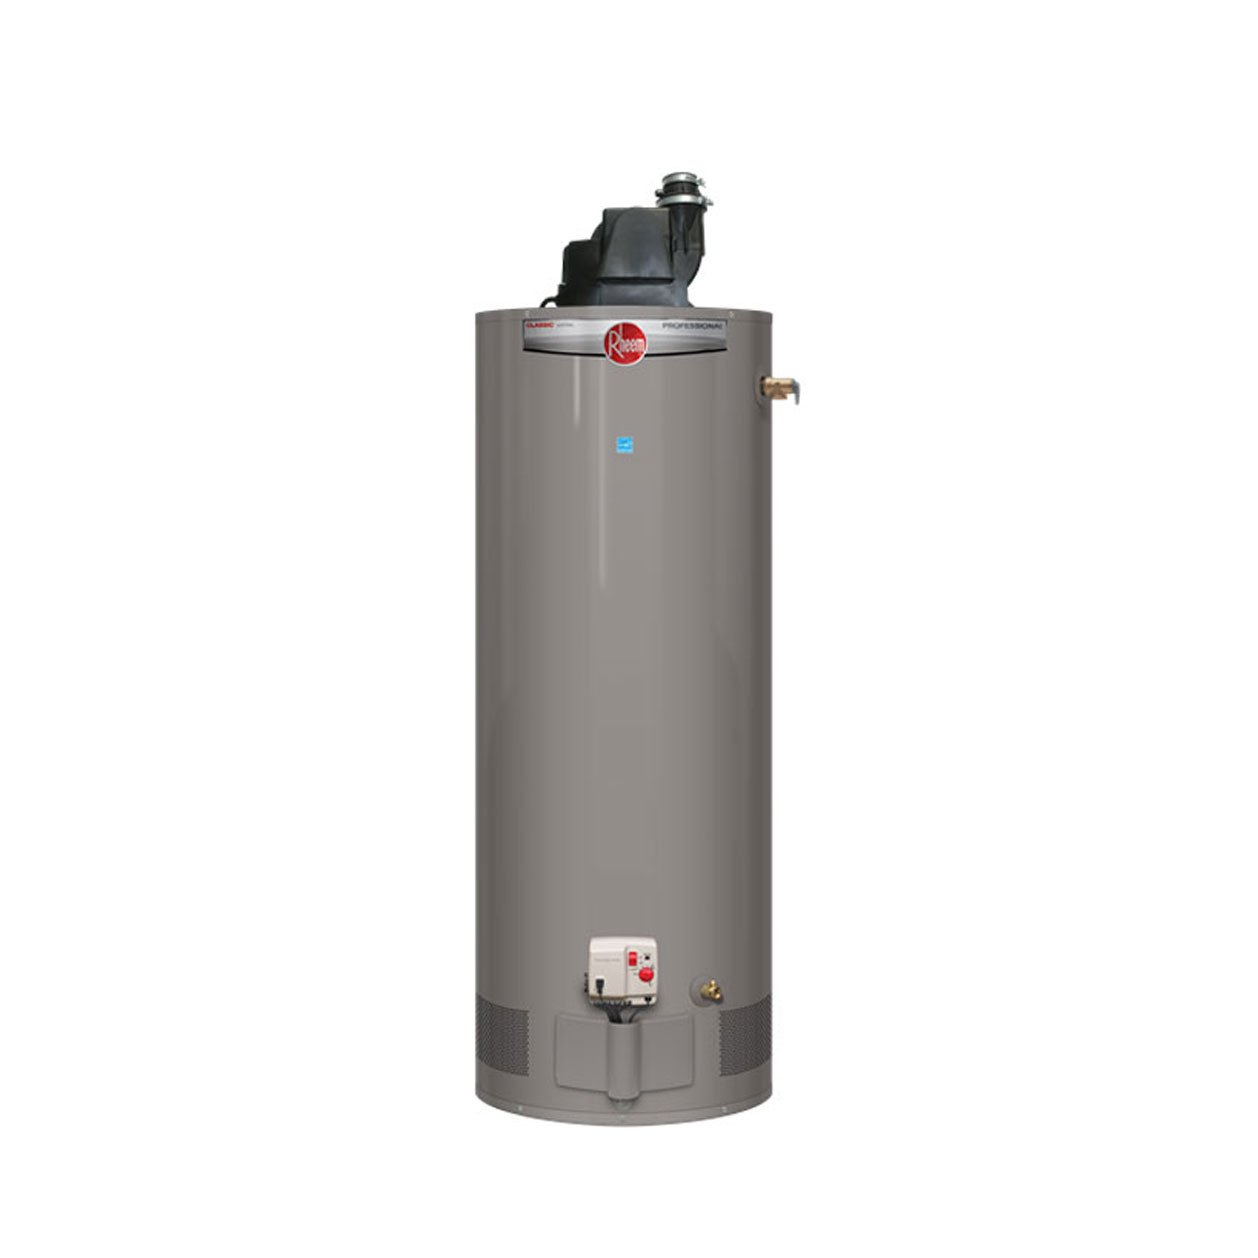 Rheem PROG50-42N RH67 PV Professional Classic Residential 42K BTU Power Vent Natural Gas Water Heater, 50-Gallon